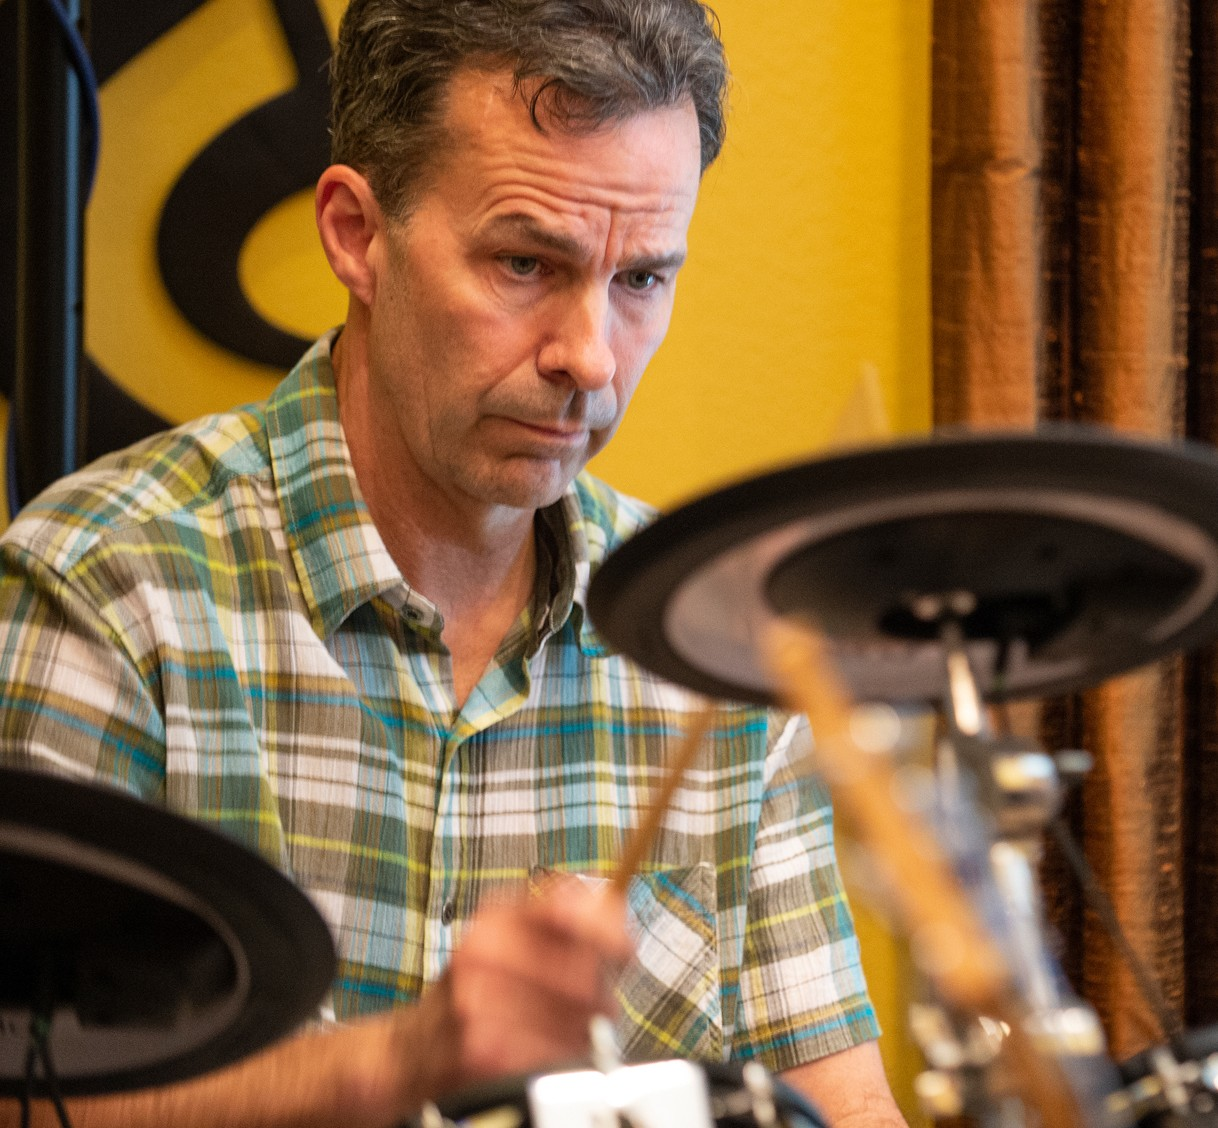 Bret Fossum concentrates while hitting cymbal.